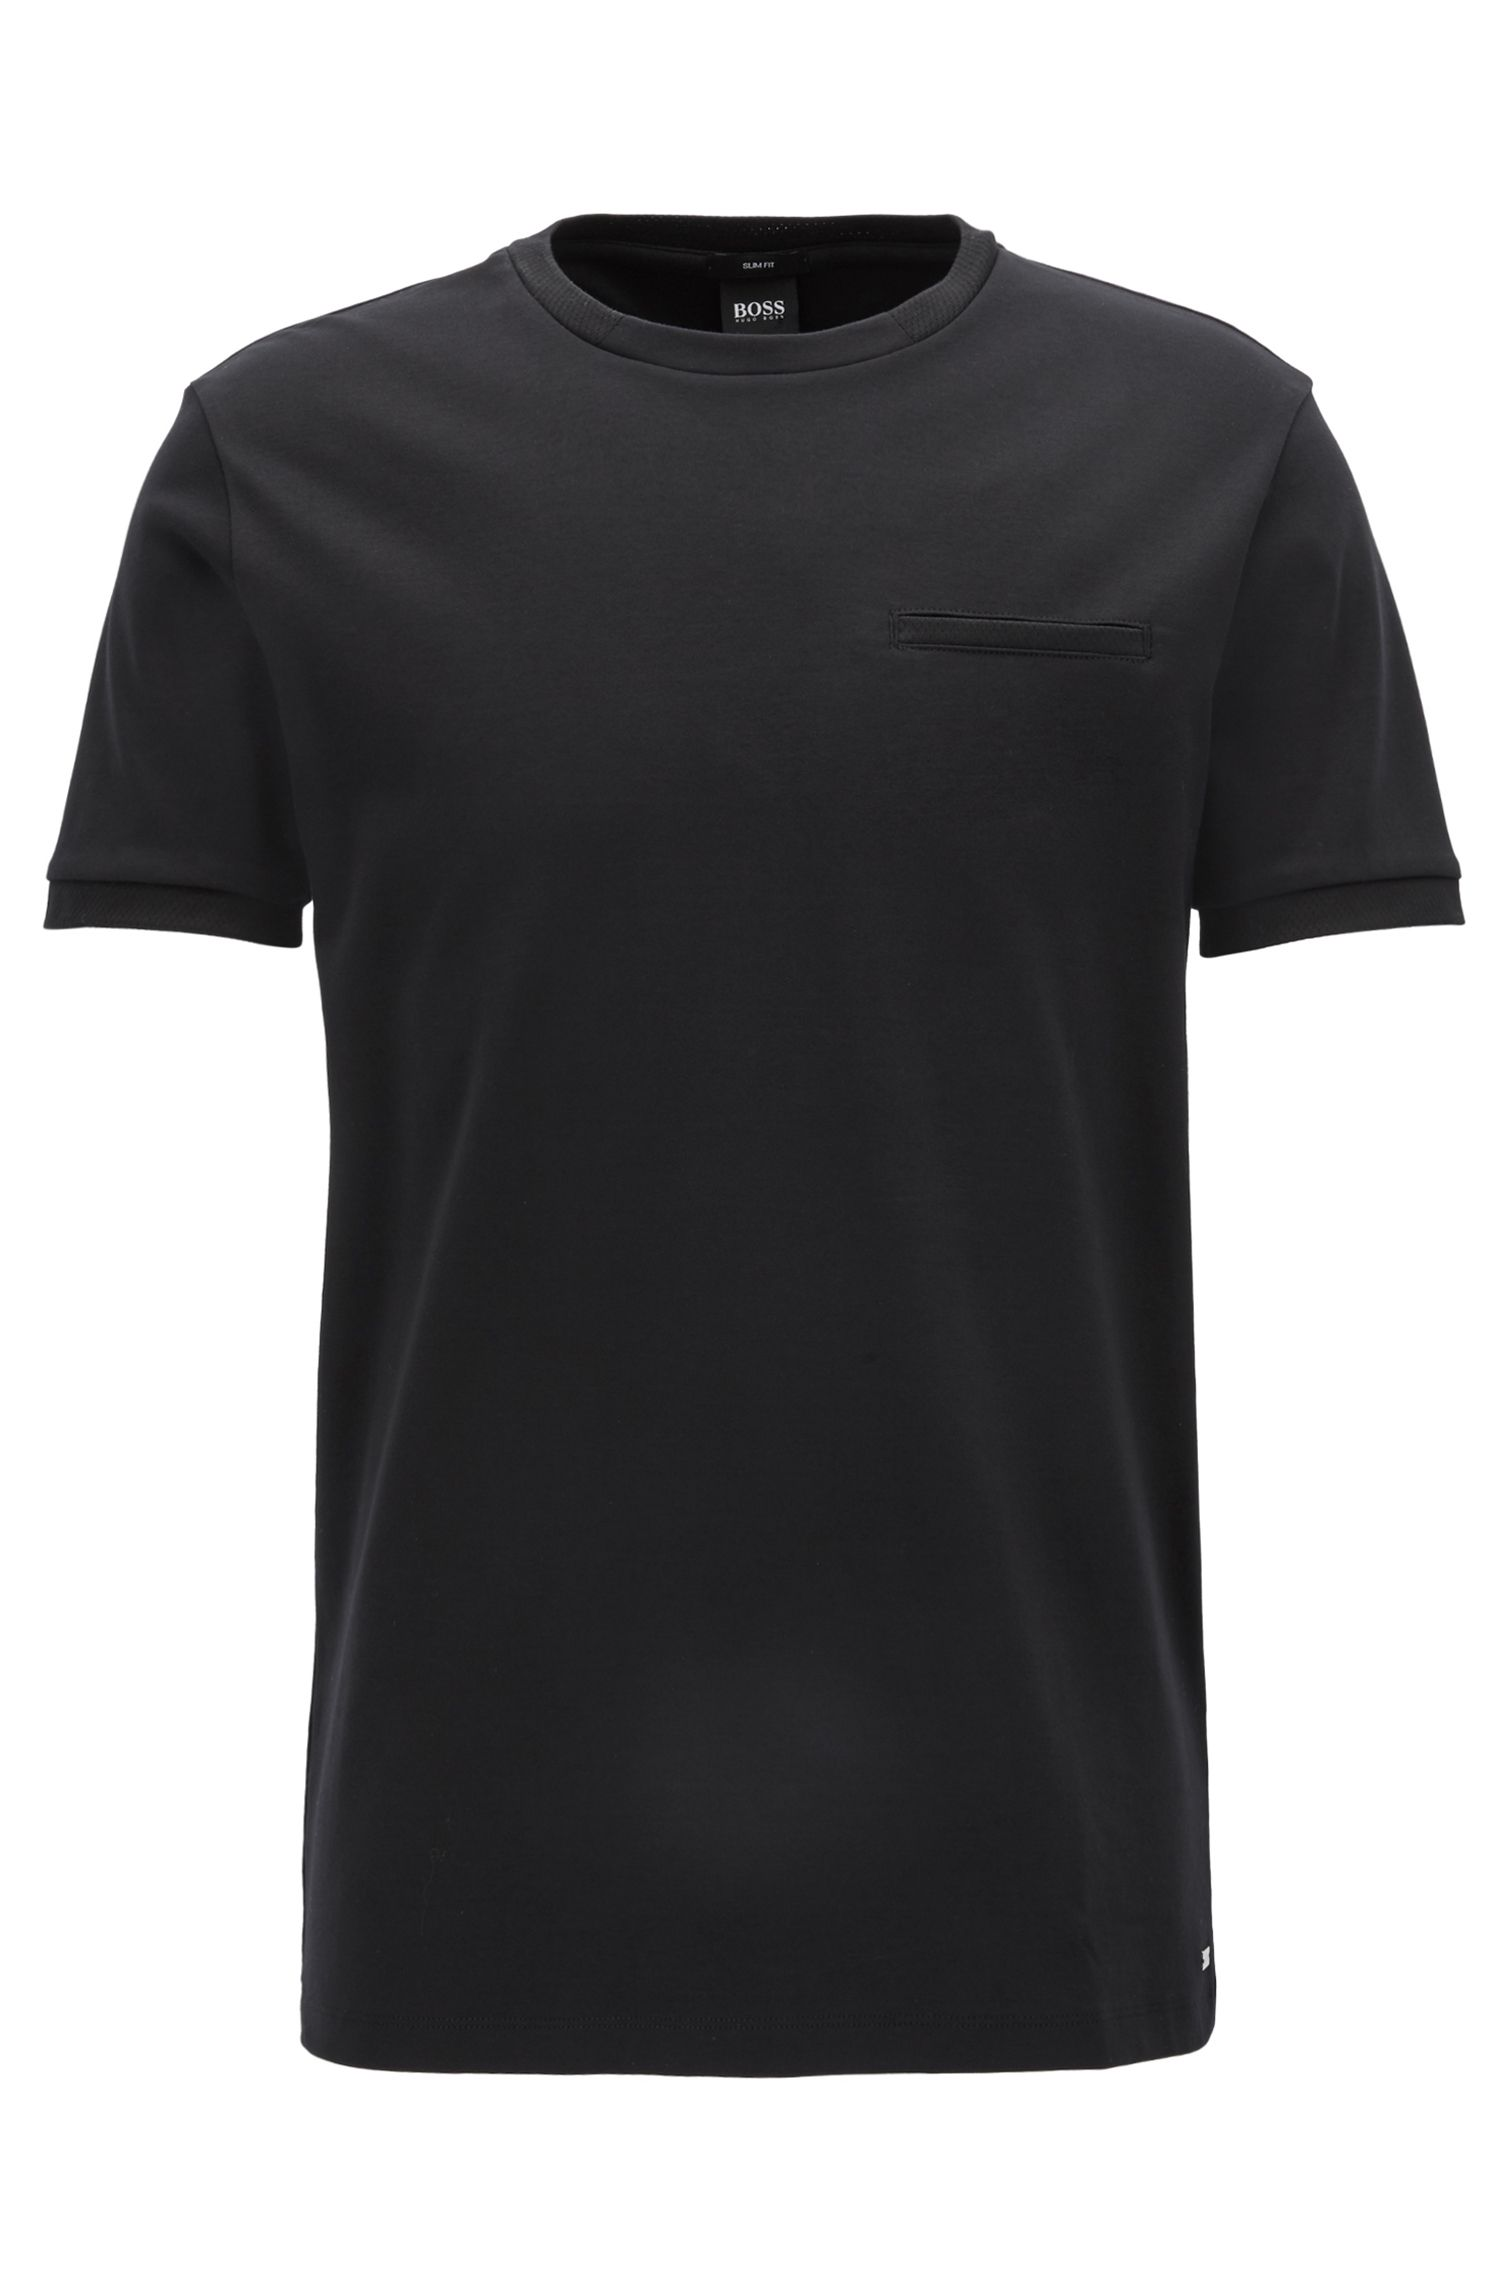 T-shirt Slim Fit Mercedes-Benz en coton interlock